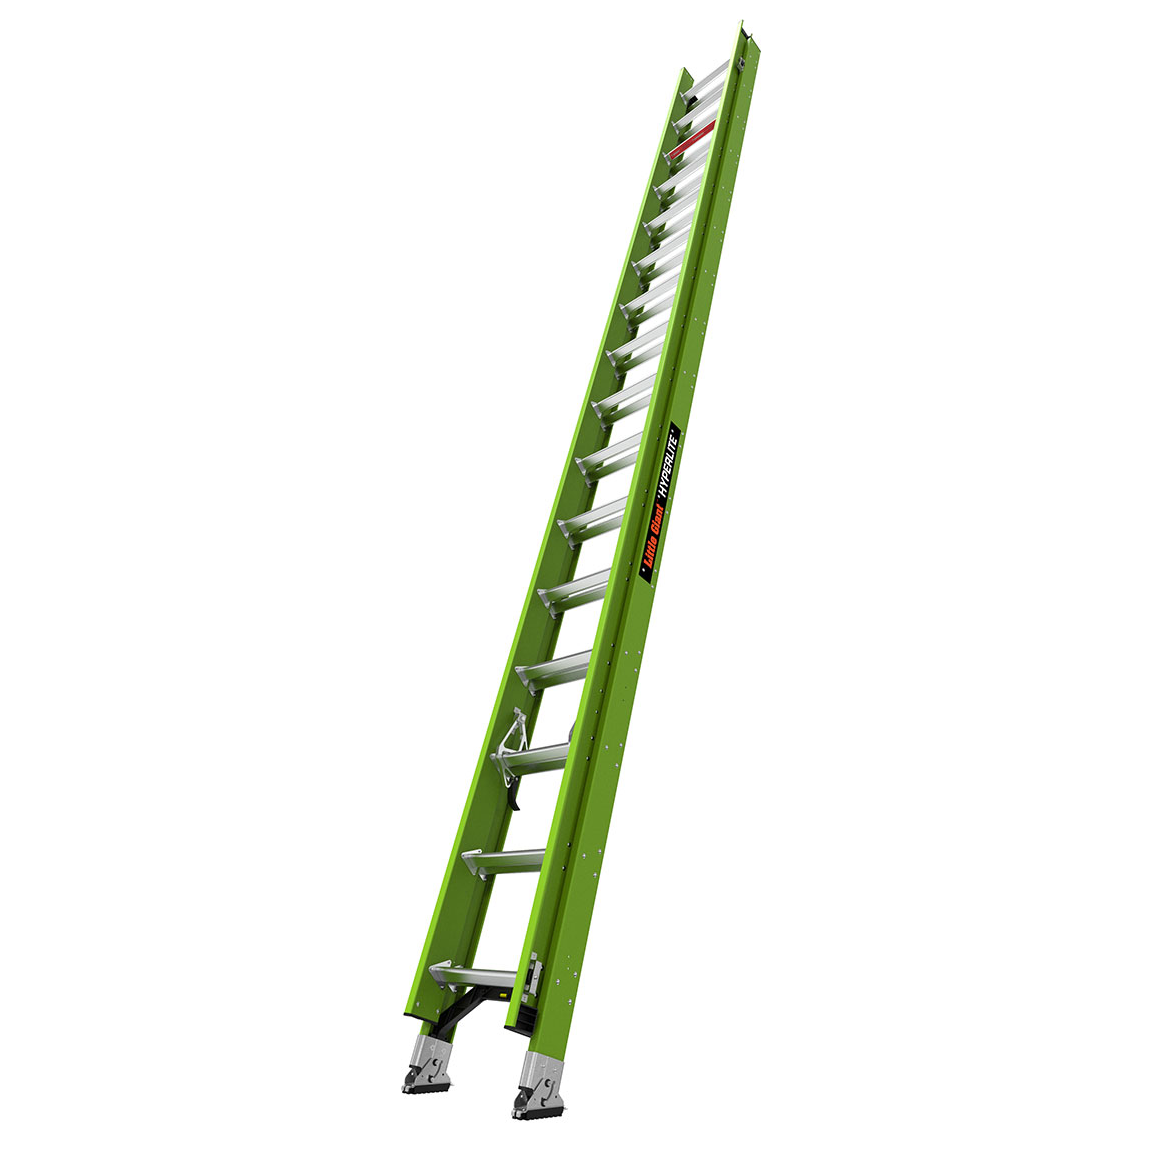 32 Ft. HyperLite Fiberglass Extension Ladder - Type IA